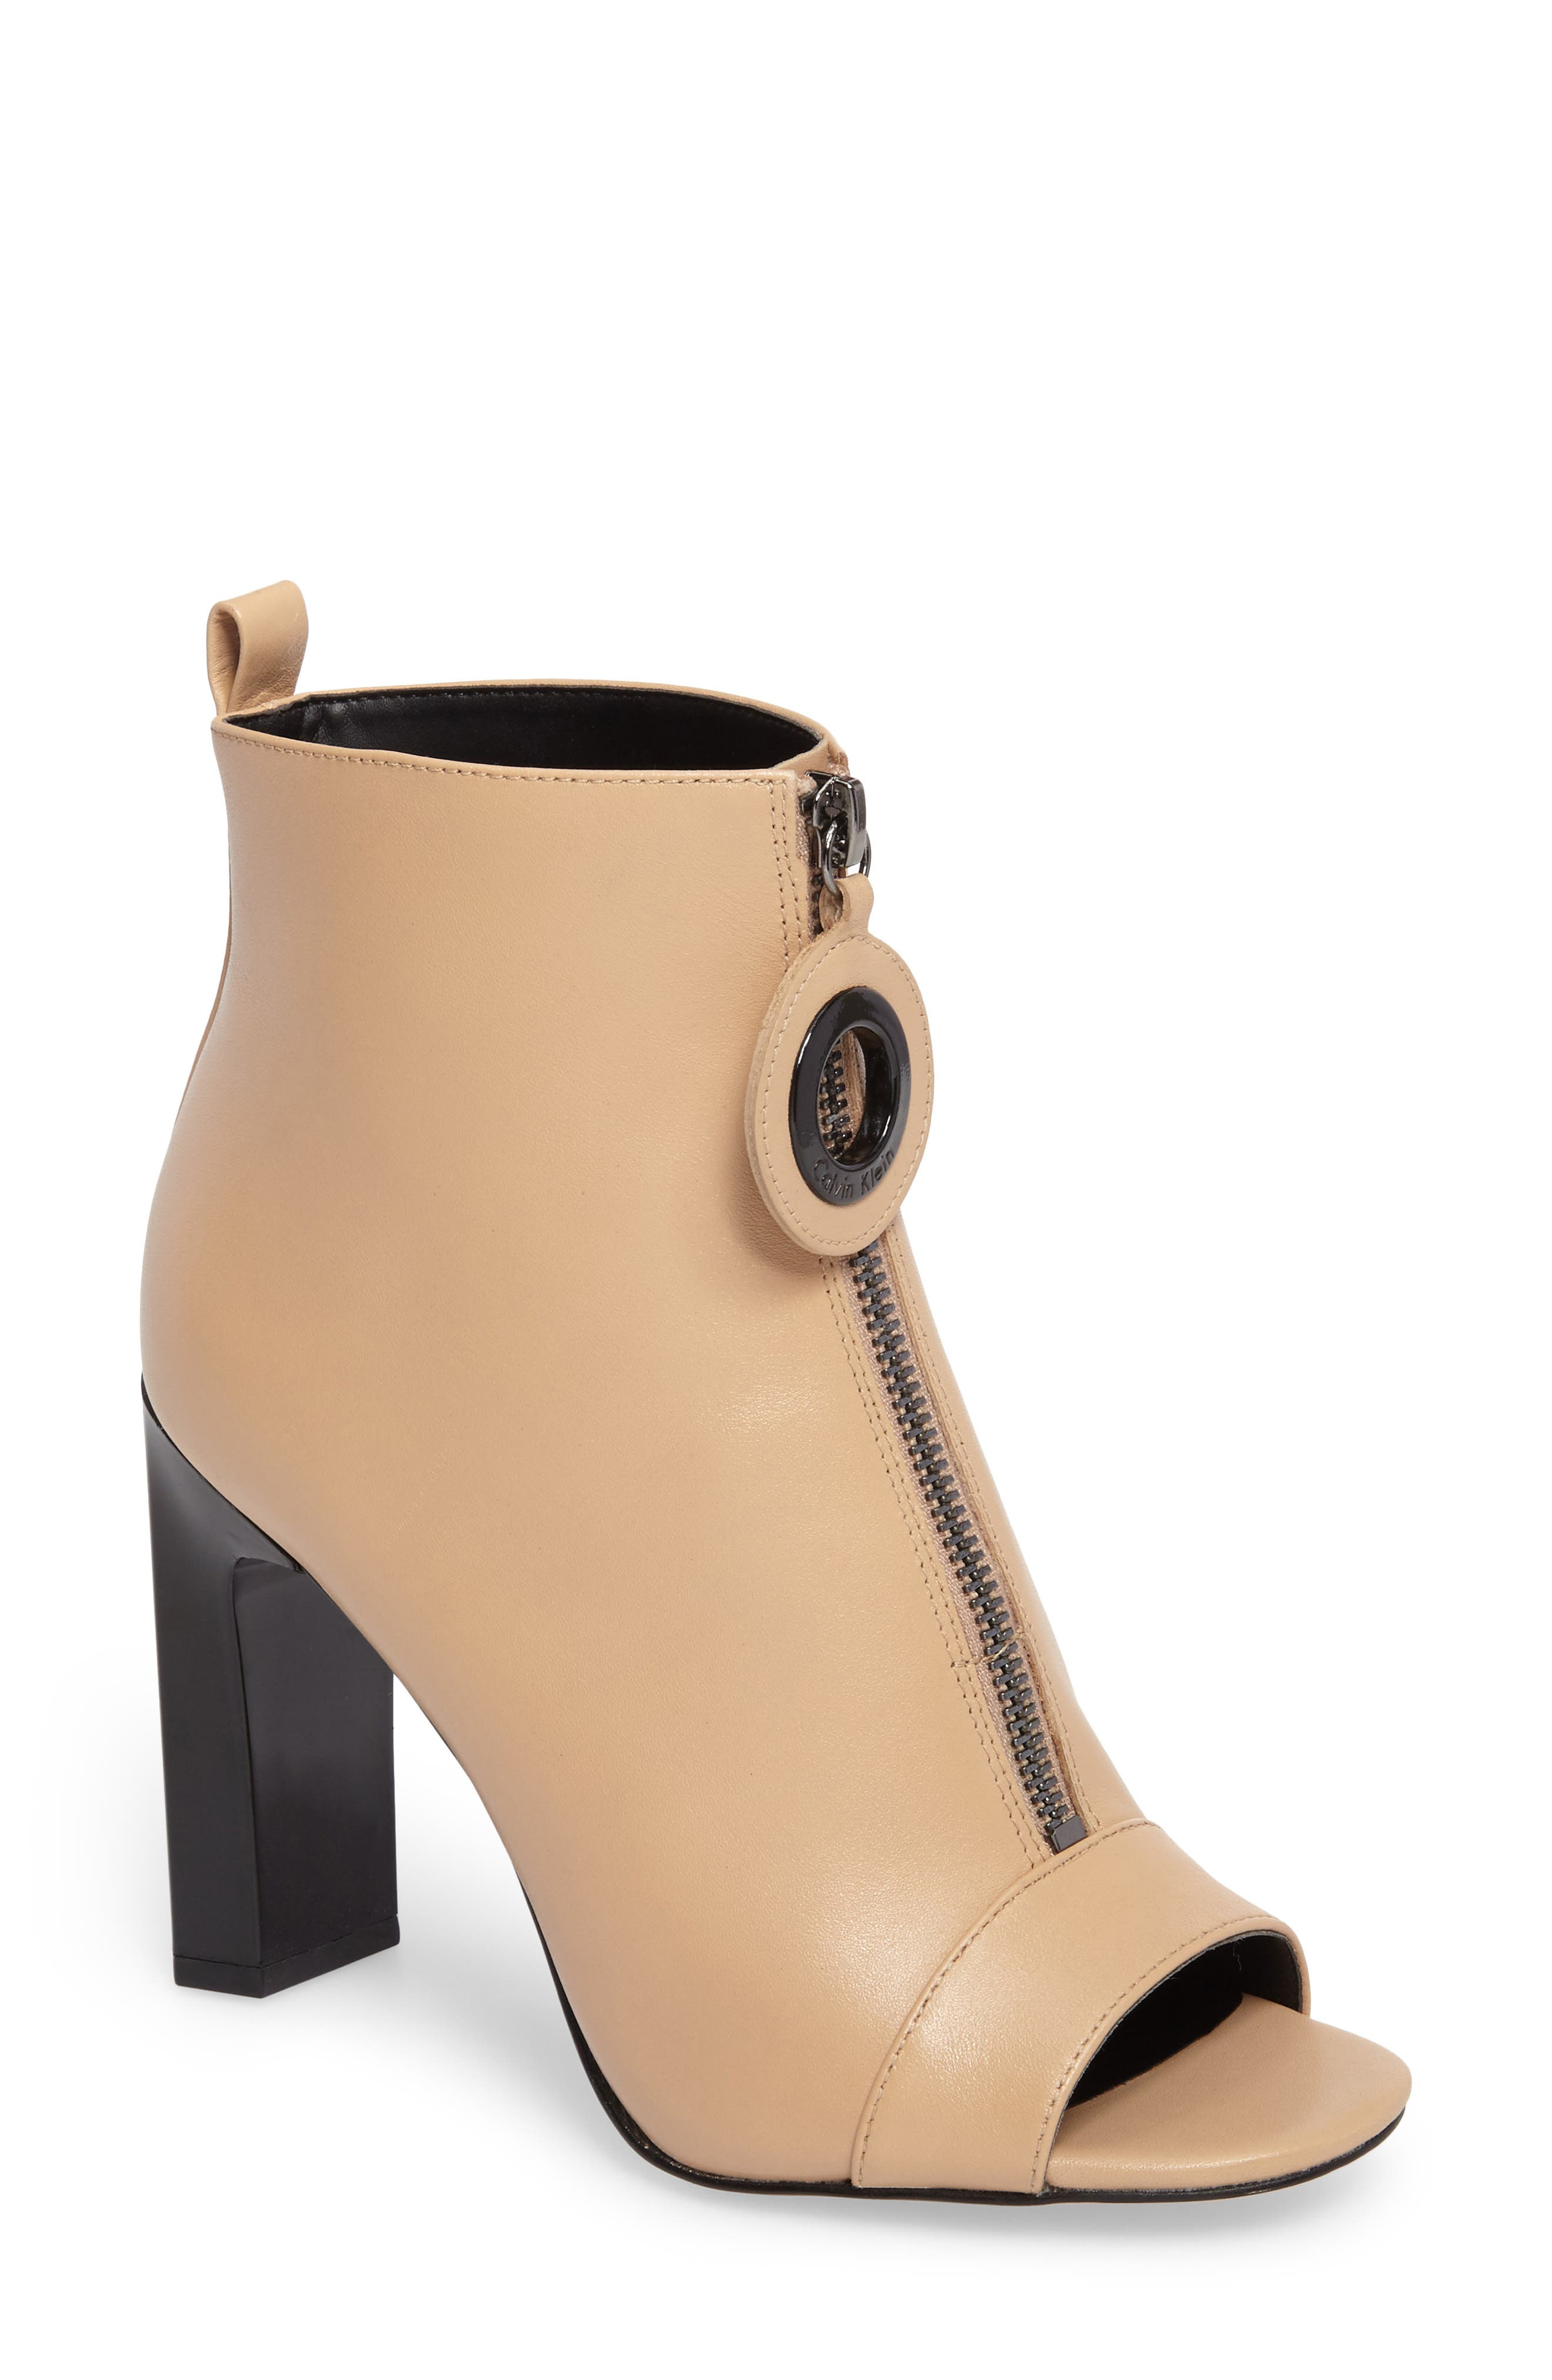 Minda Open Toe Bootie,                             Main thumbnail 1, color,                             Sandstrom Leather